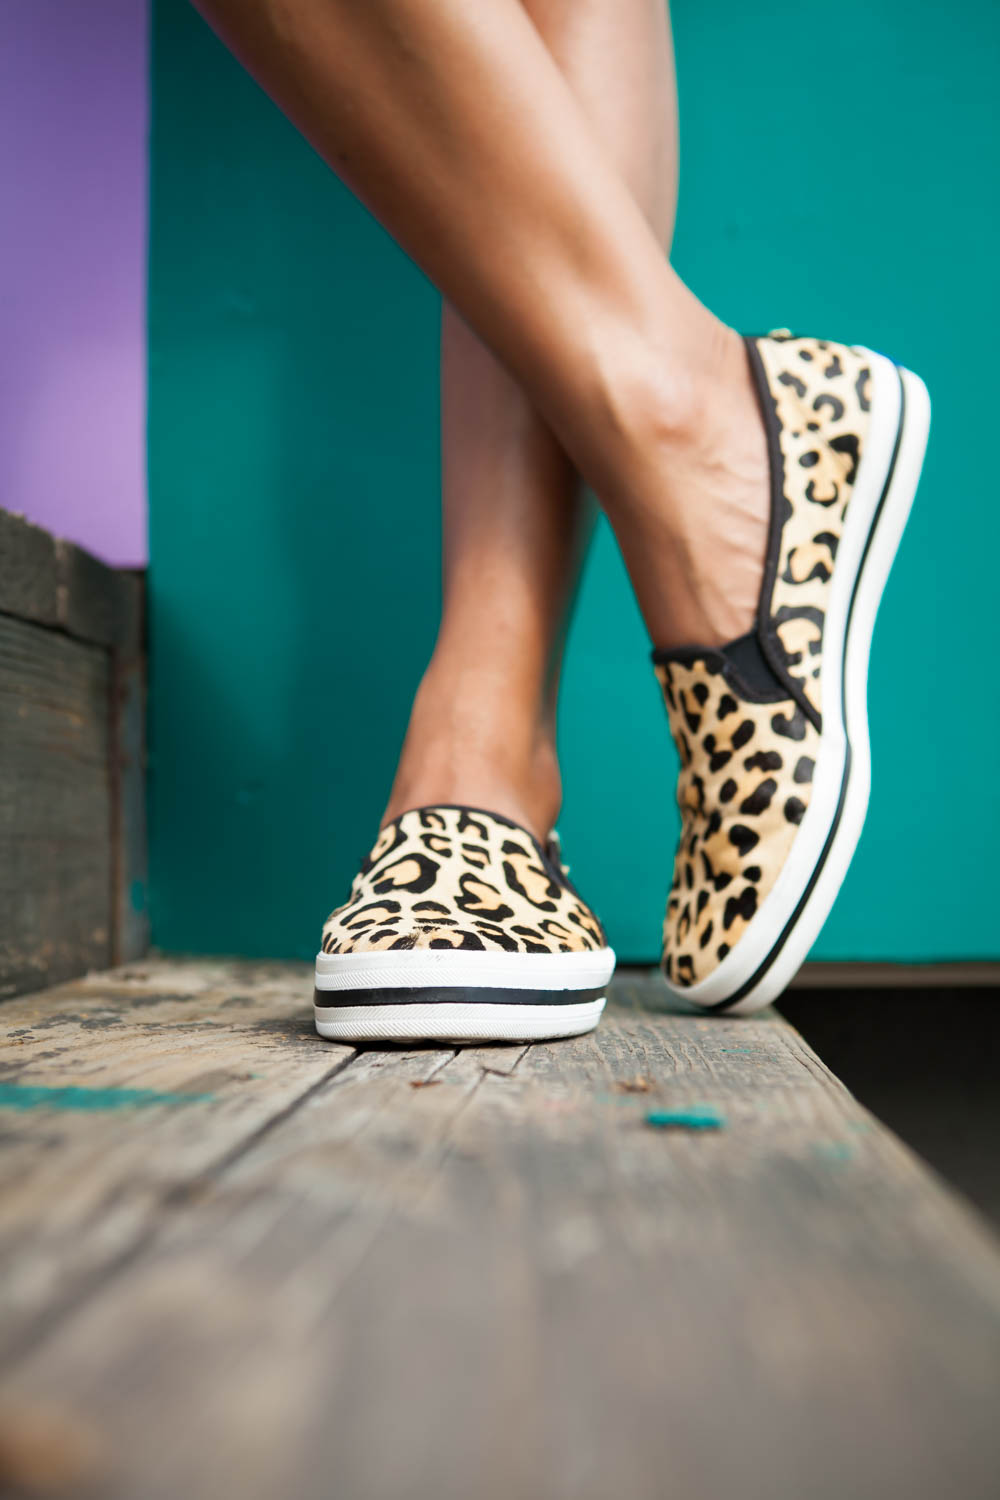 761ee2f2c679 If leopard isn t your thing the Keds x kate spade new york collection has  glitter slip ons too but there s something about leopard that just speaks  to me.